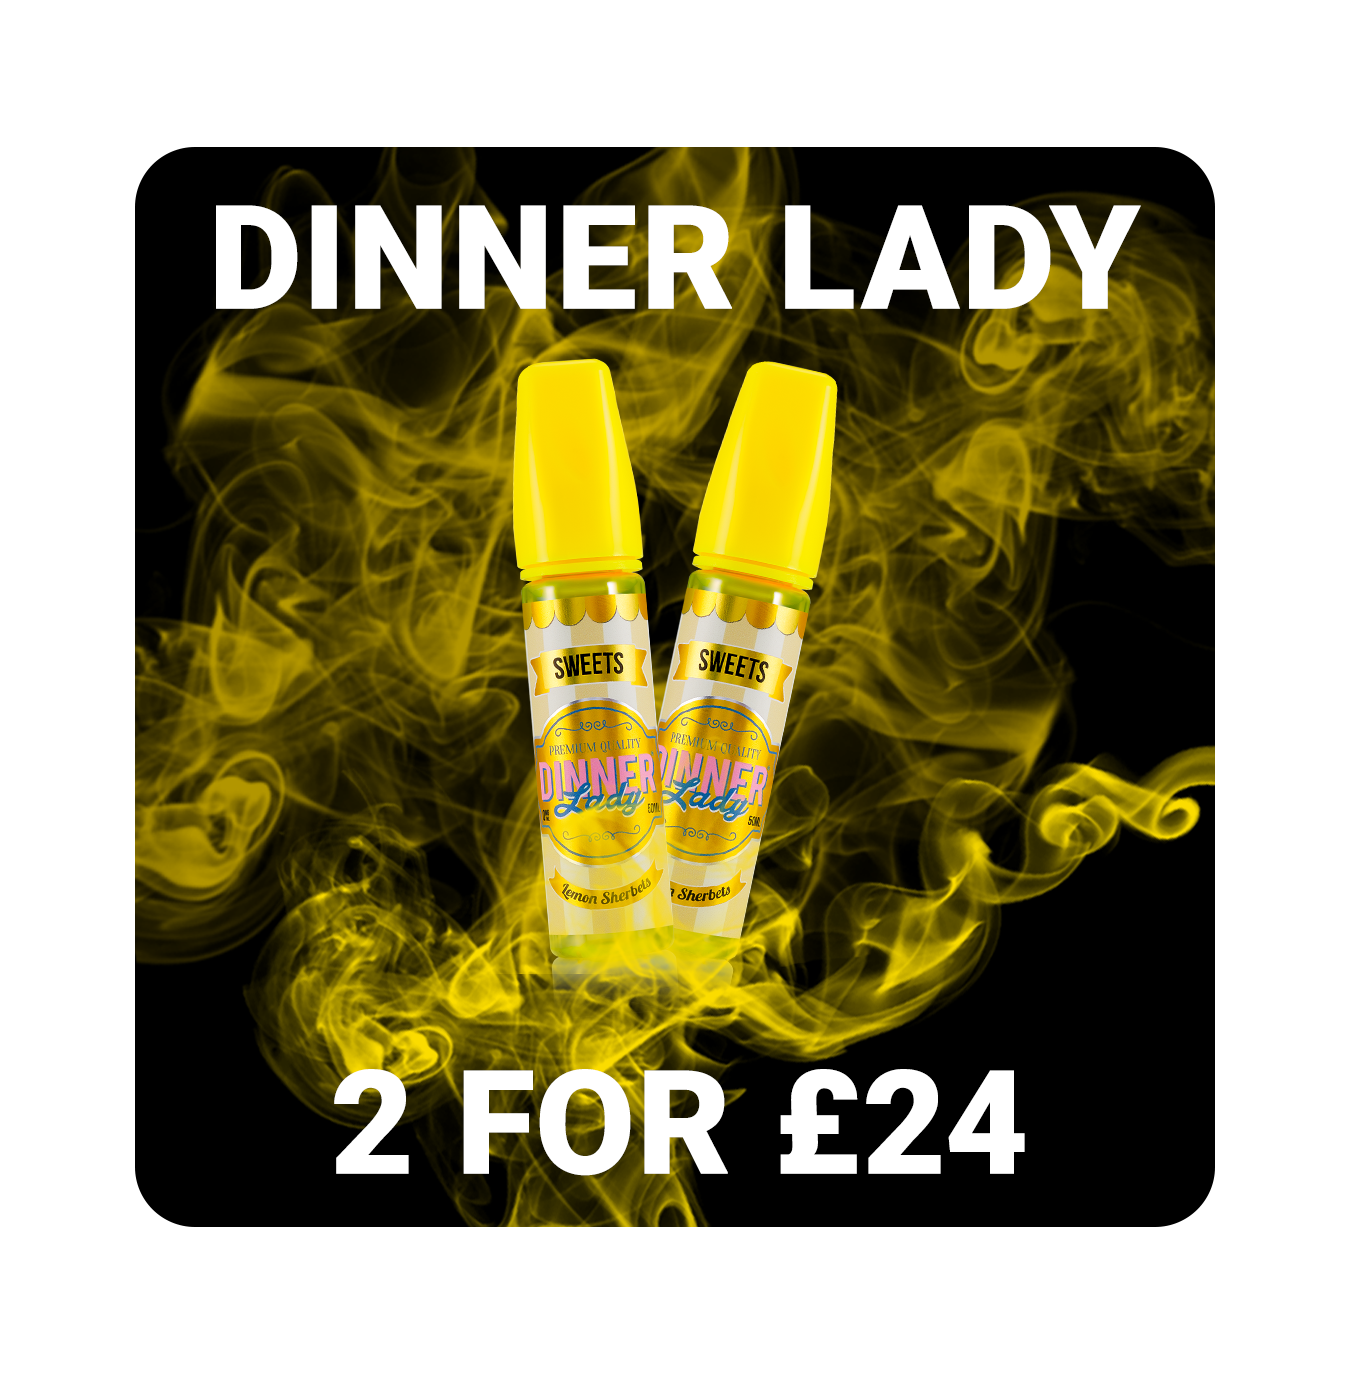 dinner-lady-2-for-24